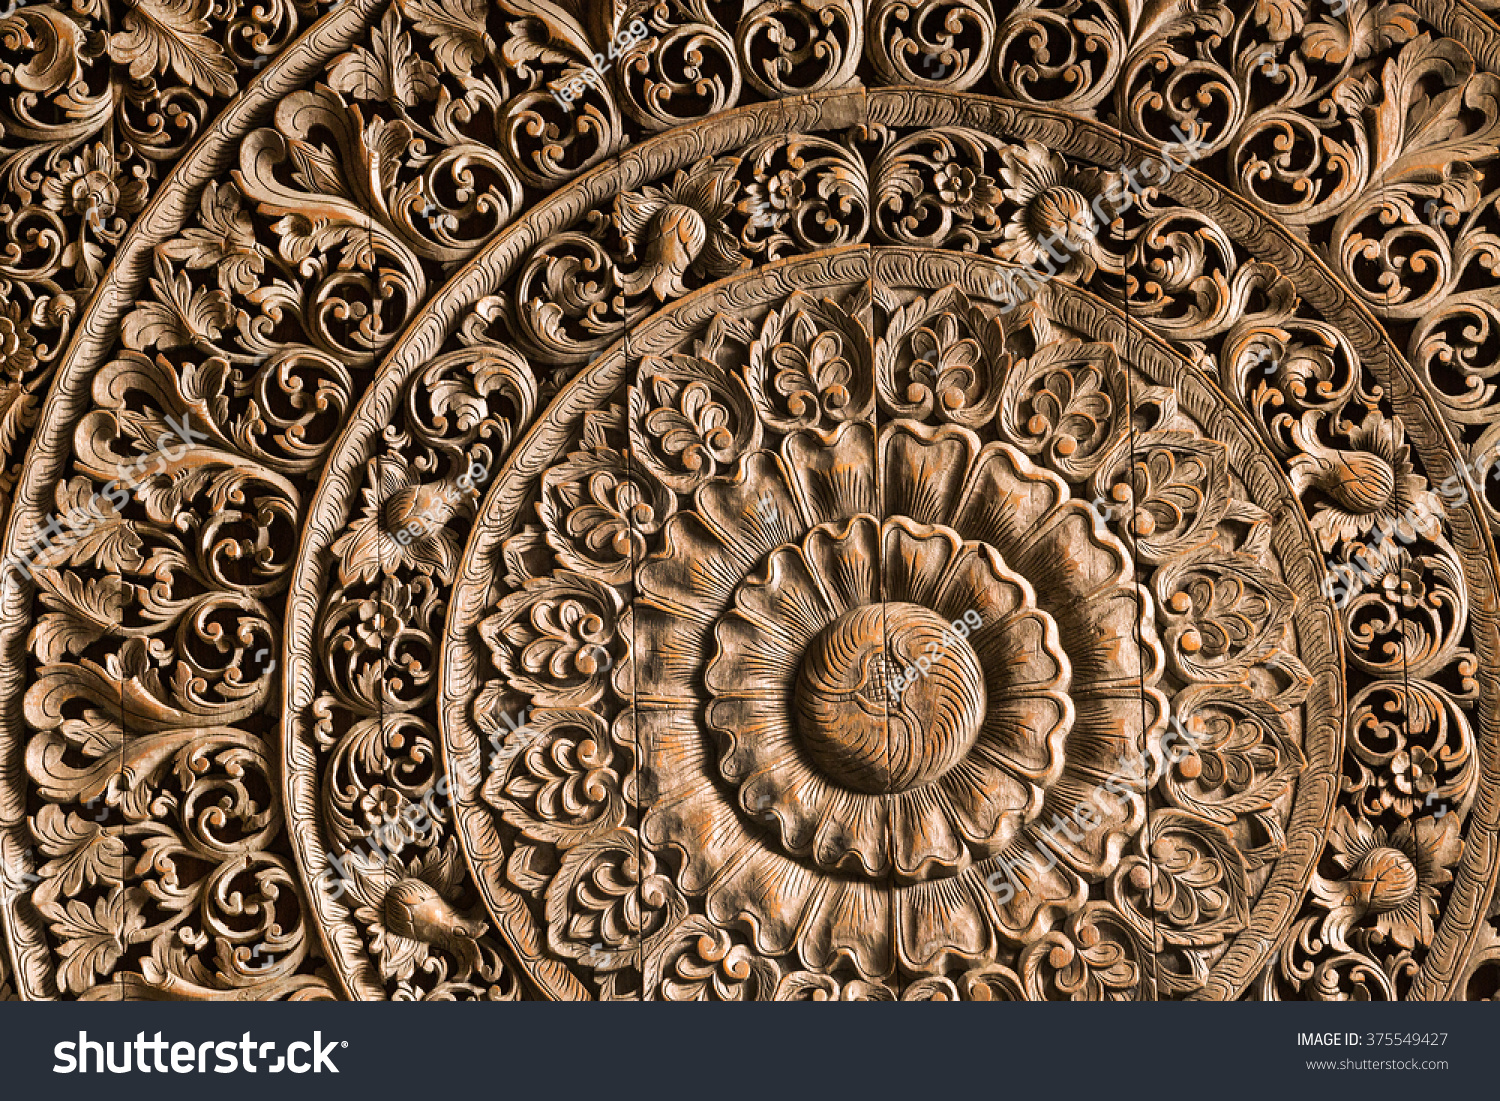 Wood carving pattern for background. ez canvas